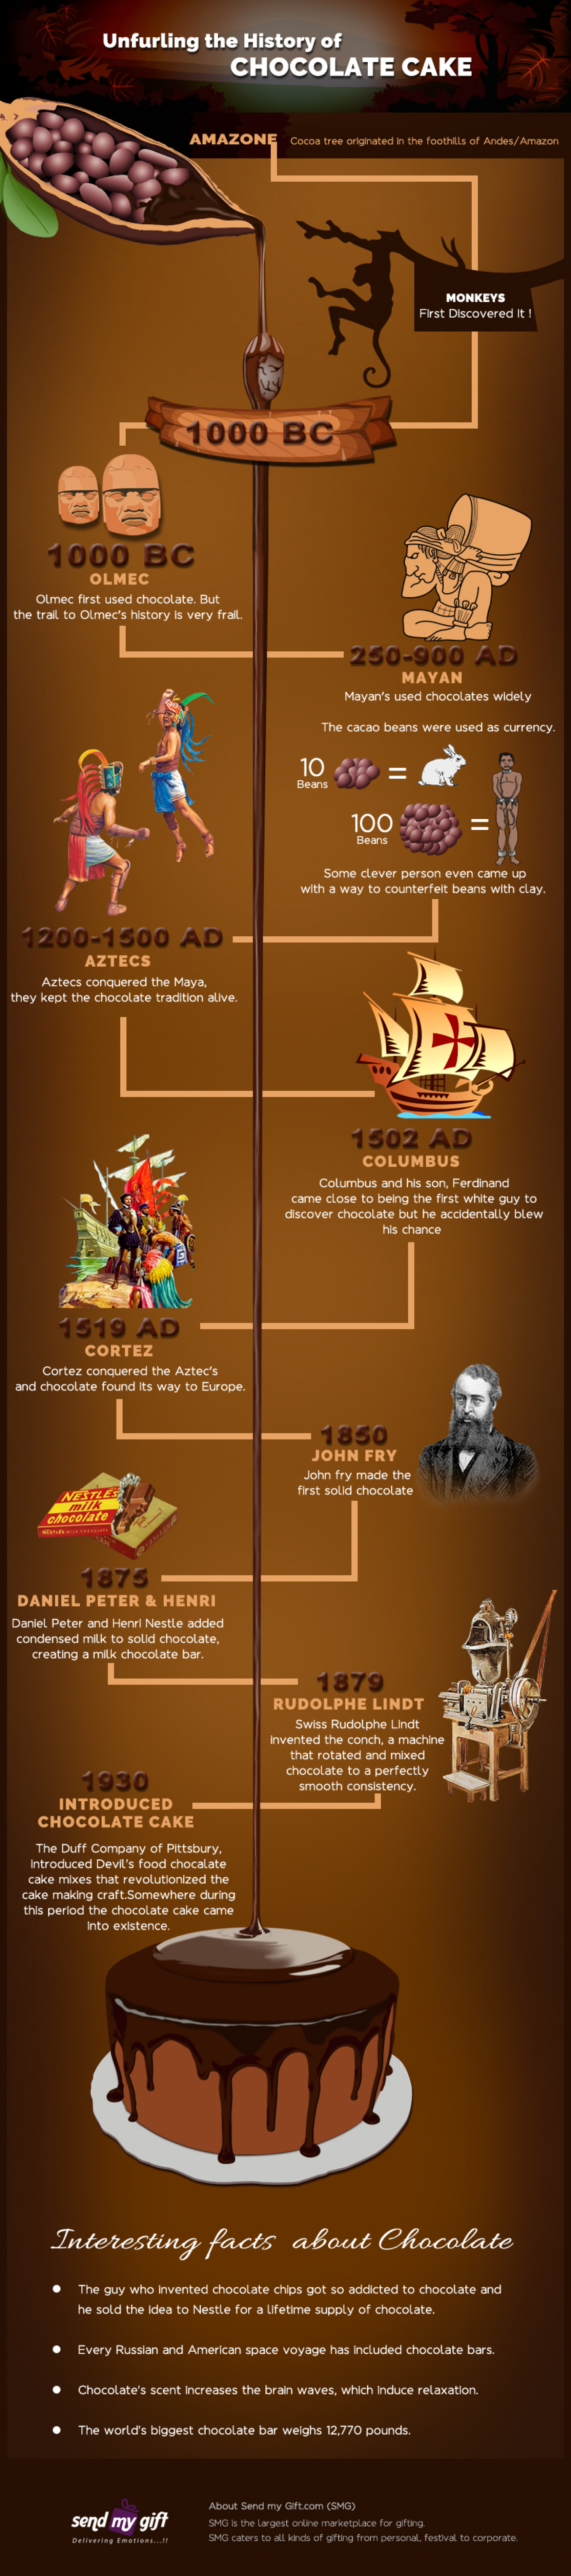 Unfurling the History of Chocolate Cake